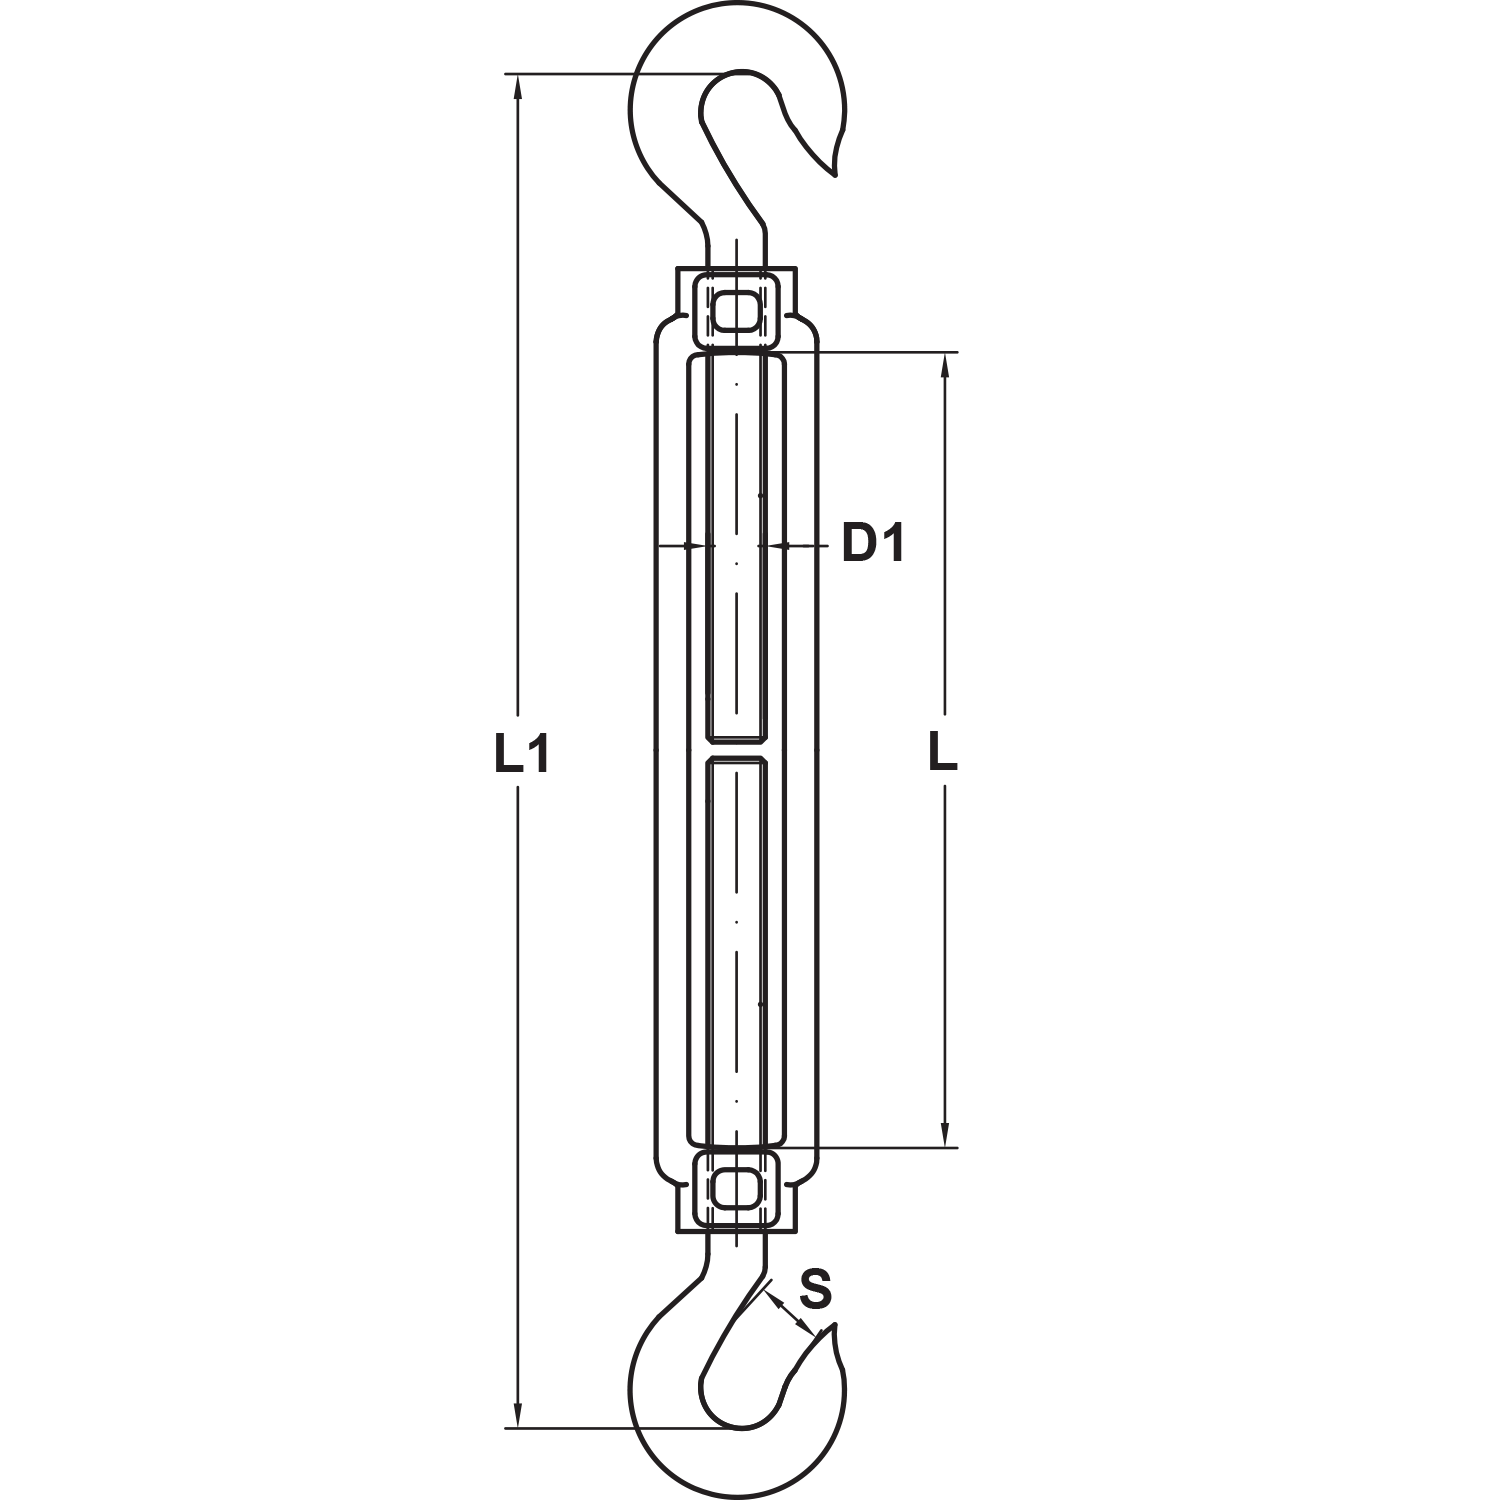 3-8-x-6-stainless-steel-hook-hook-turnbuckle-us-type-diagram